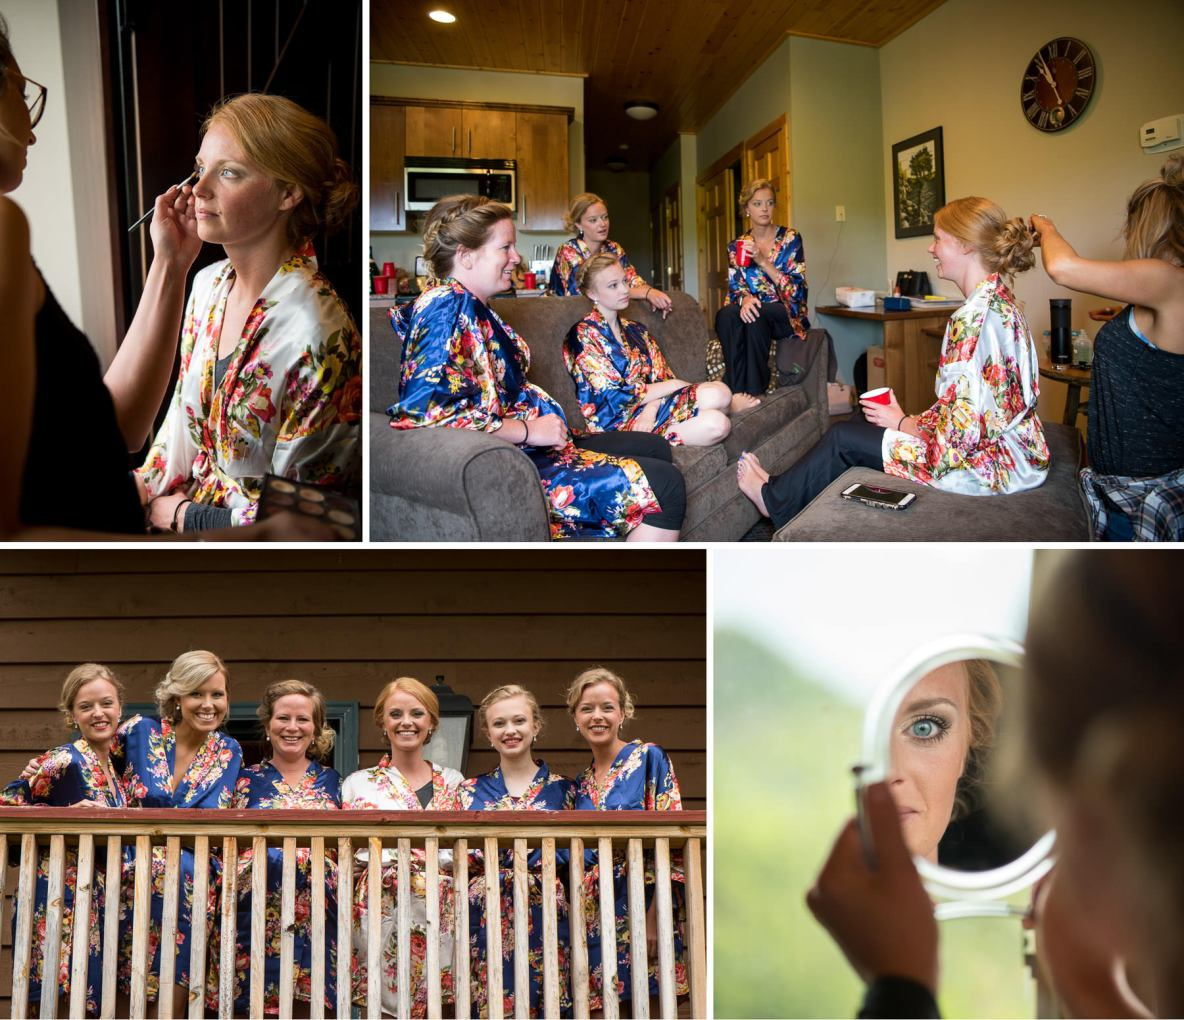 Getting ready photos of the bride and bridesmaids wearing matching robes and applying makeup.